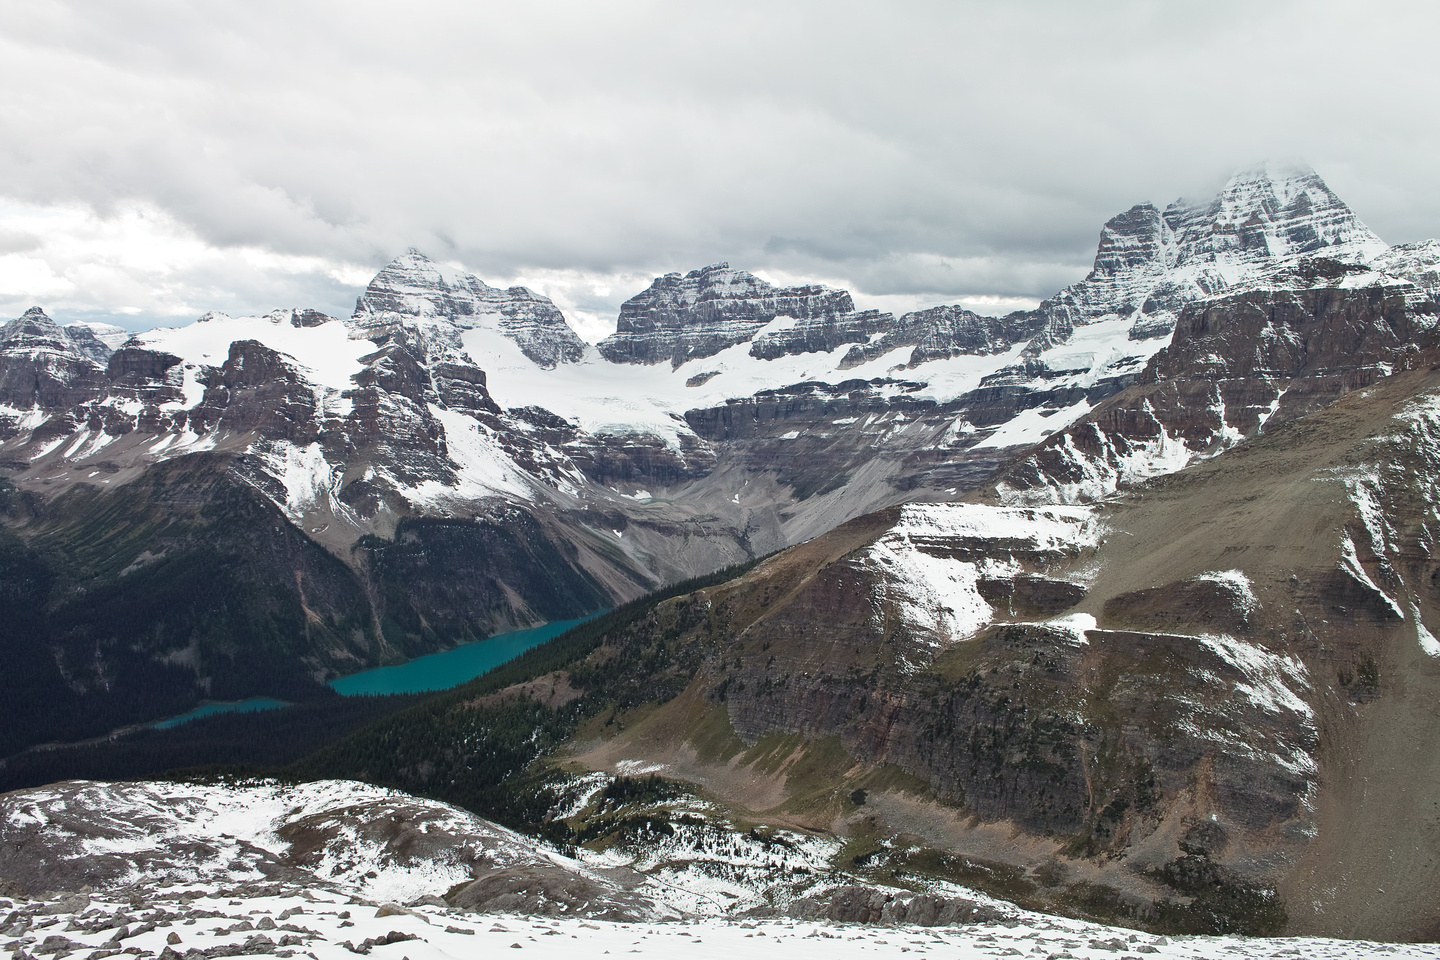 Gorgeous views of Gloria Lake, Aye, Lunette and Mount Assiniboine.